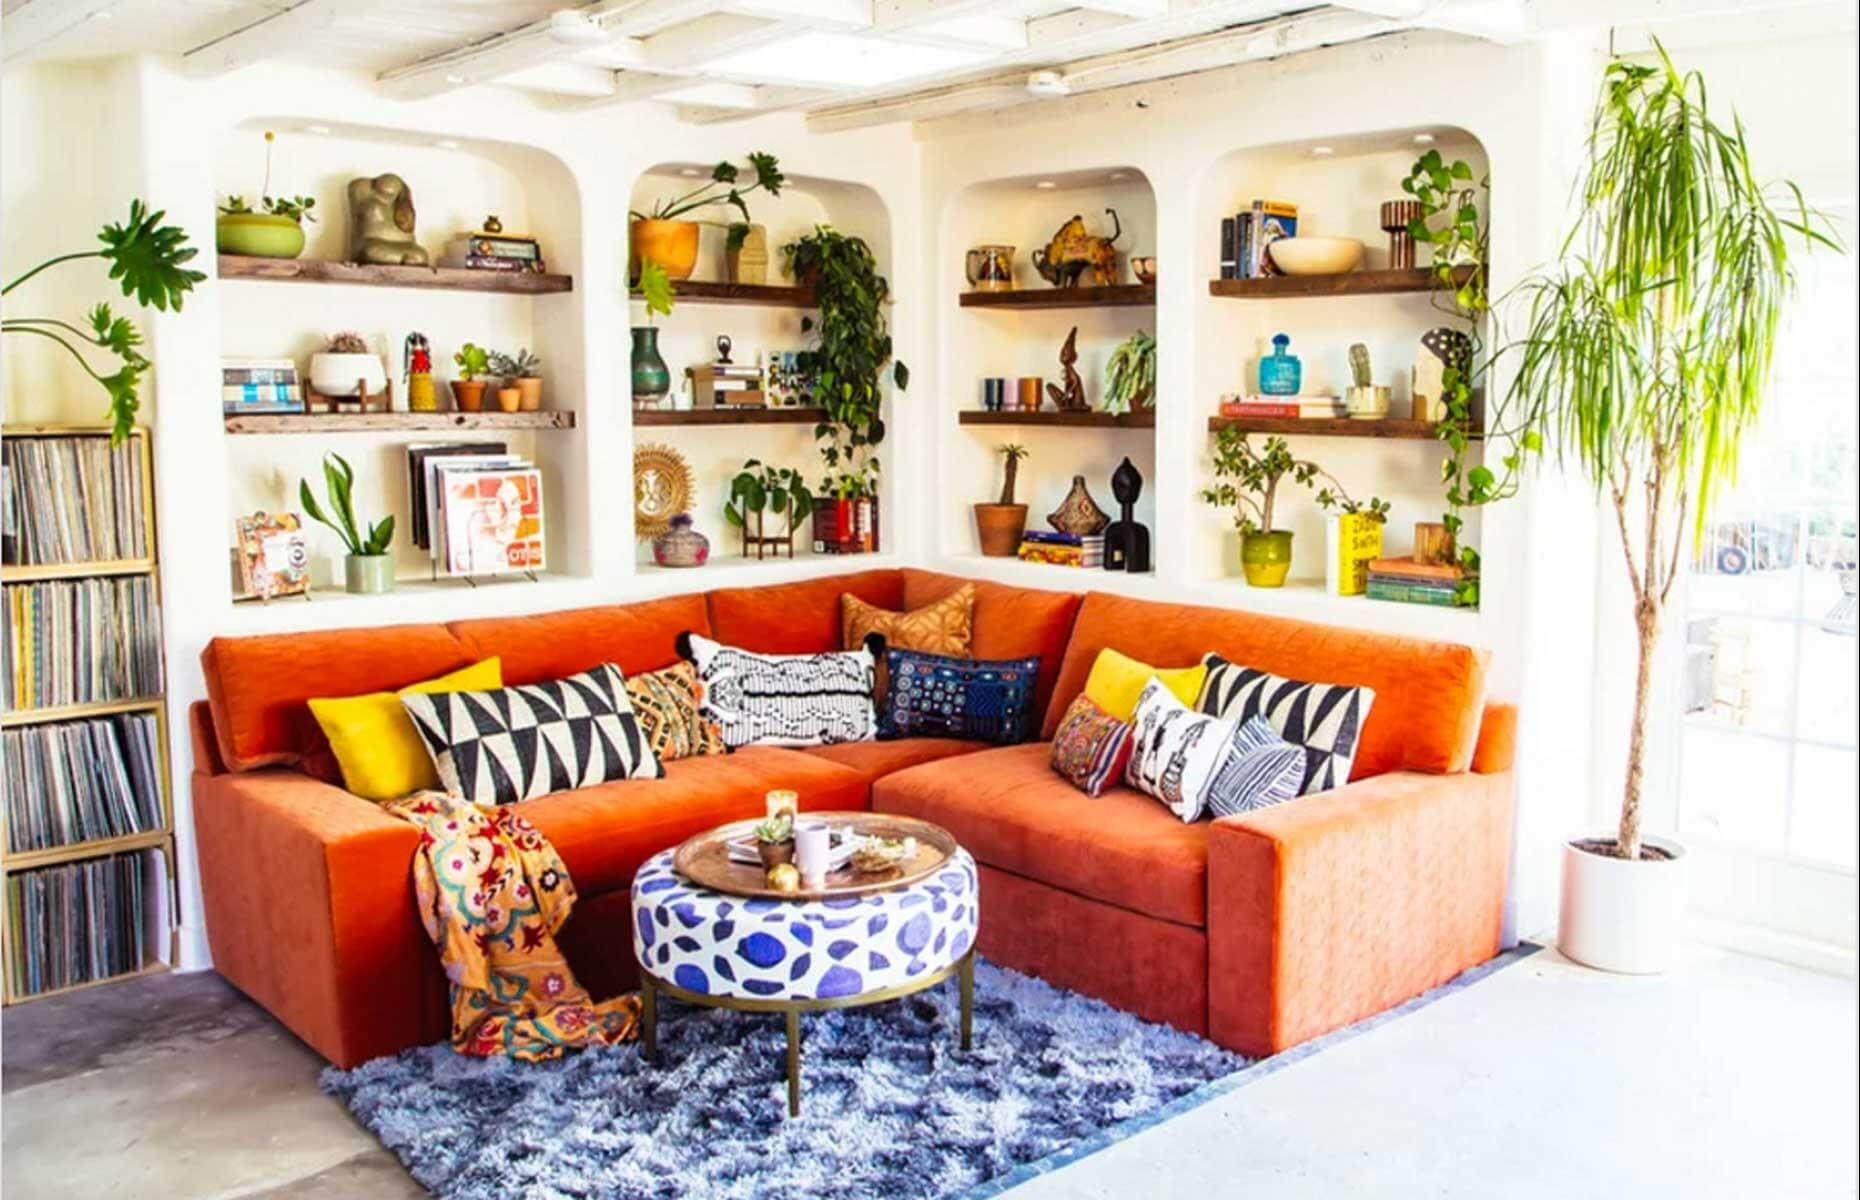 JUNGALOW GARAGE MAKEOVER LIVING SPACE IDEAS